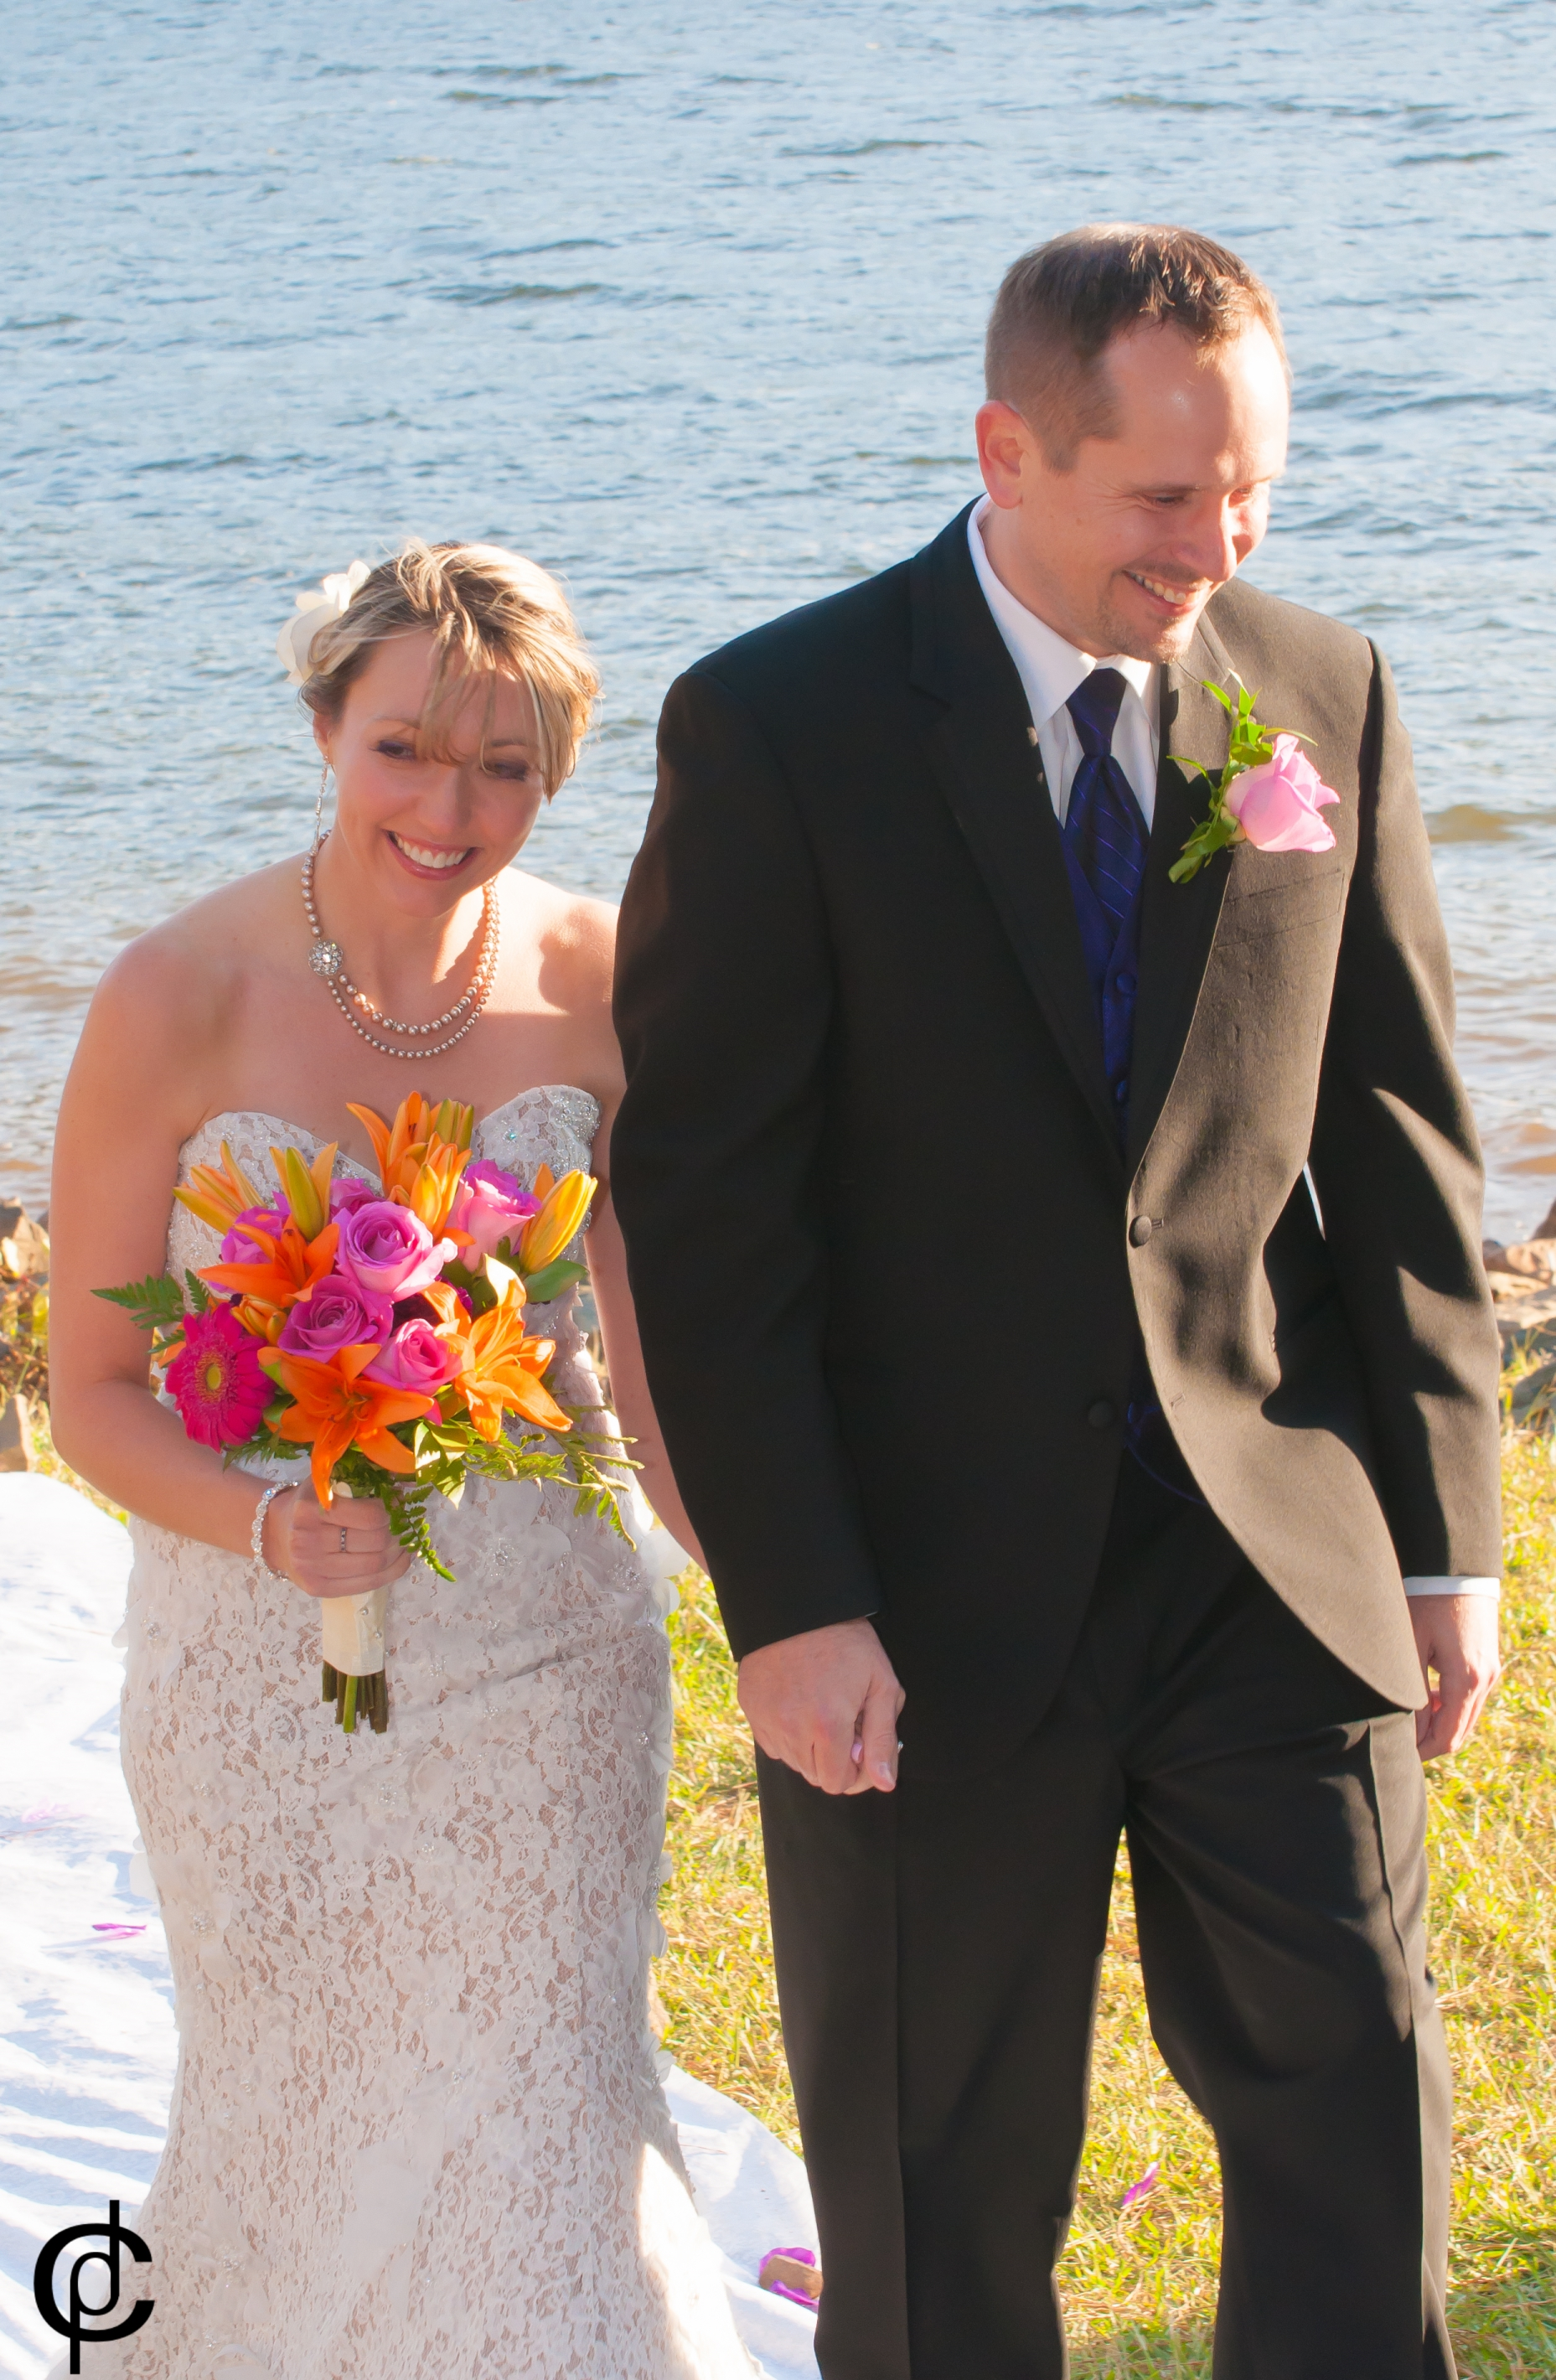 Lake Wedding - 17